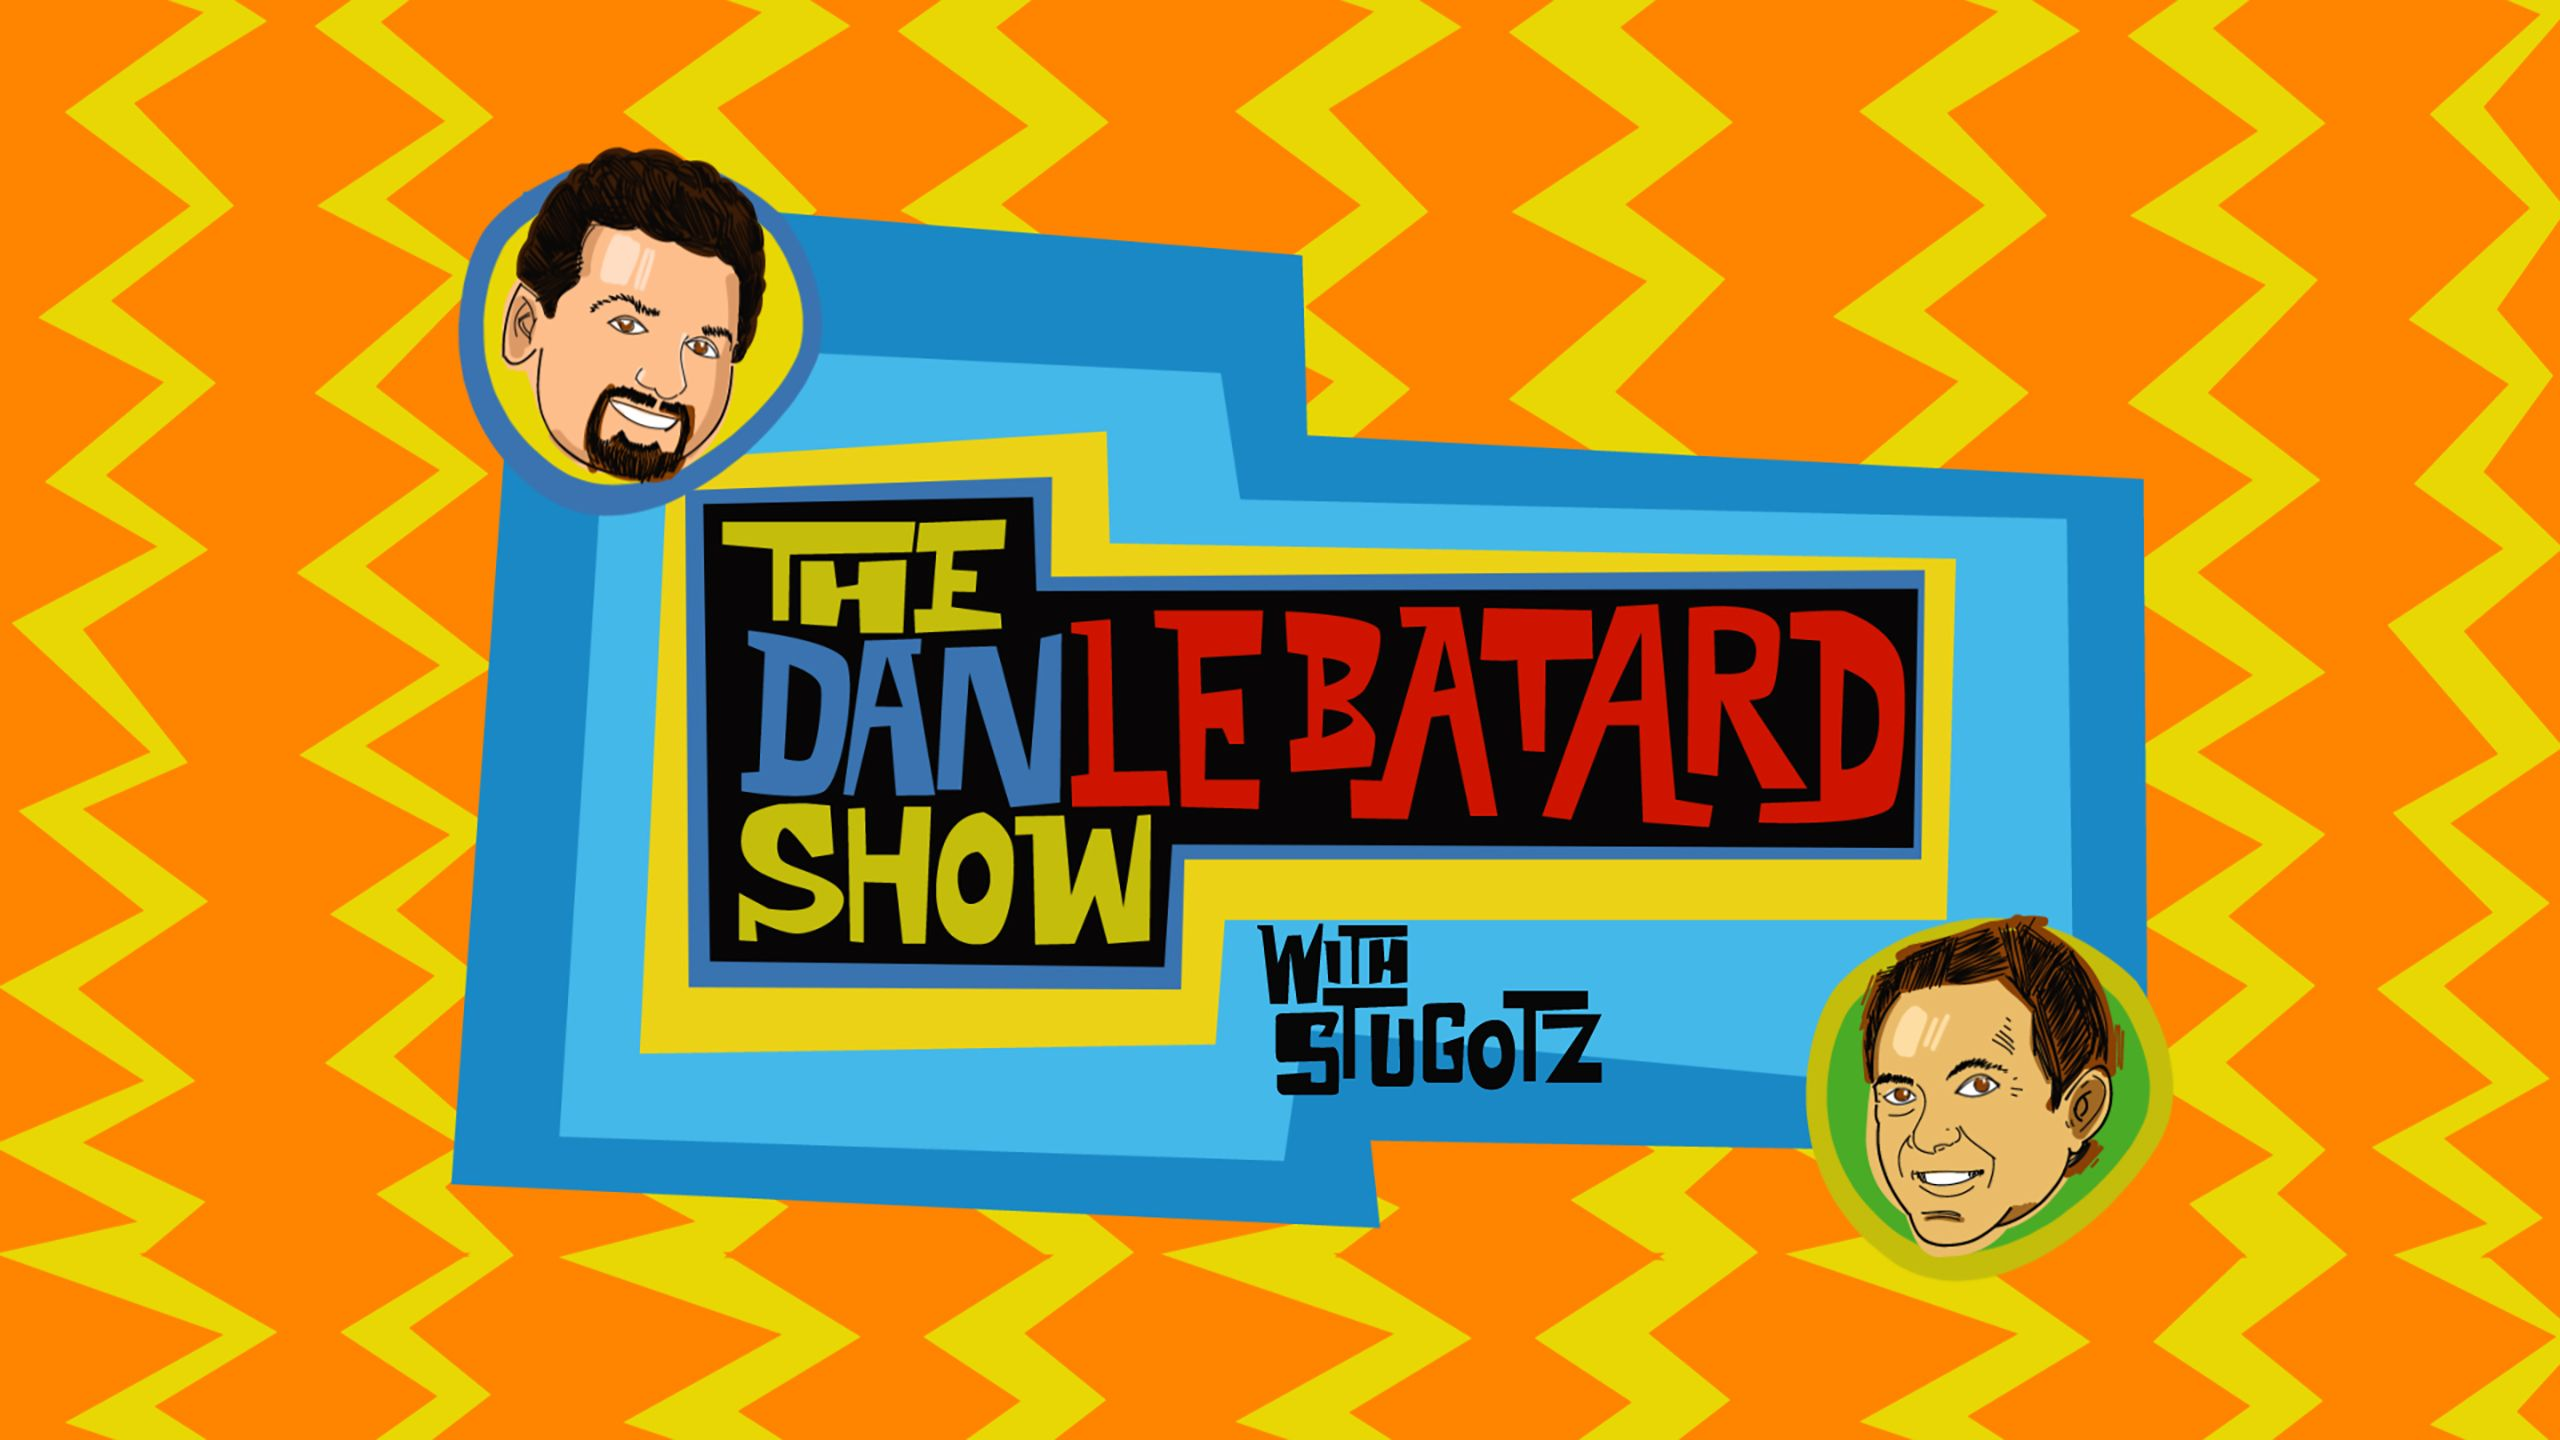 Thu, 7/19 - The Dan Le Batard Show with Stugotz Presented by Progressive